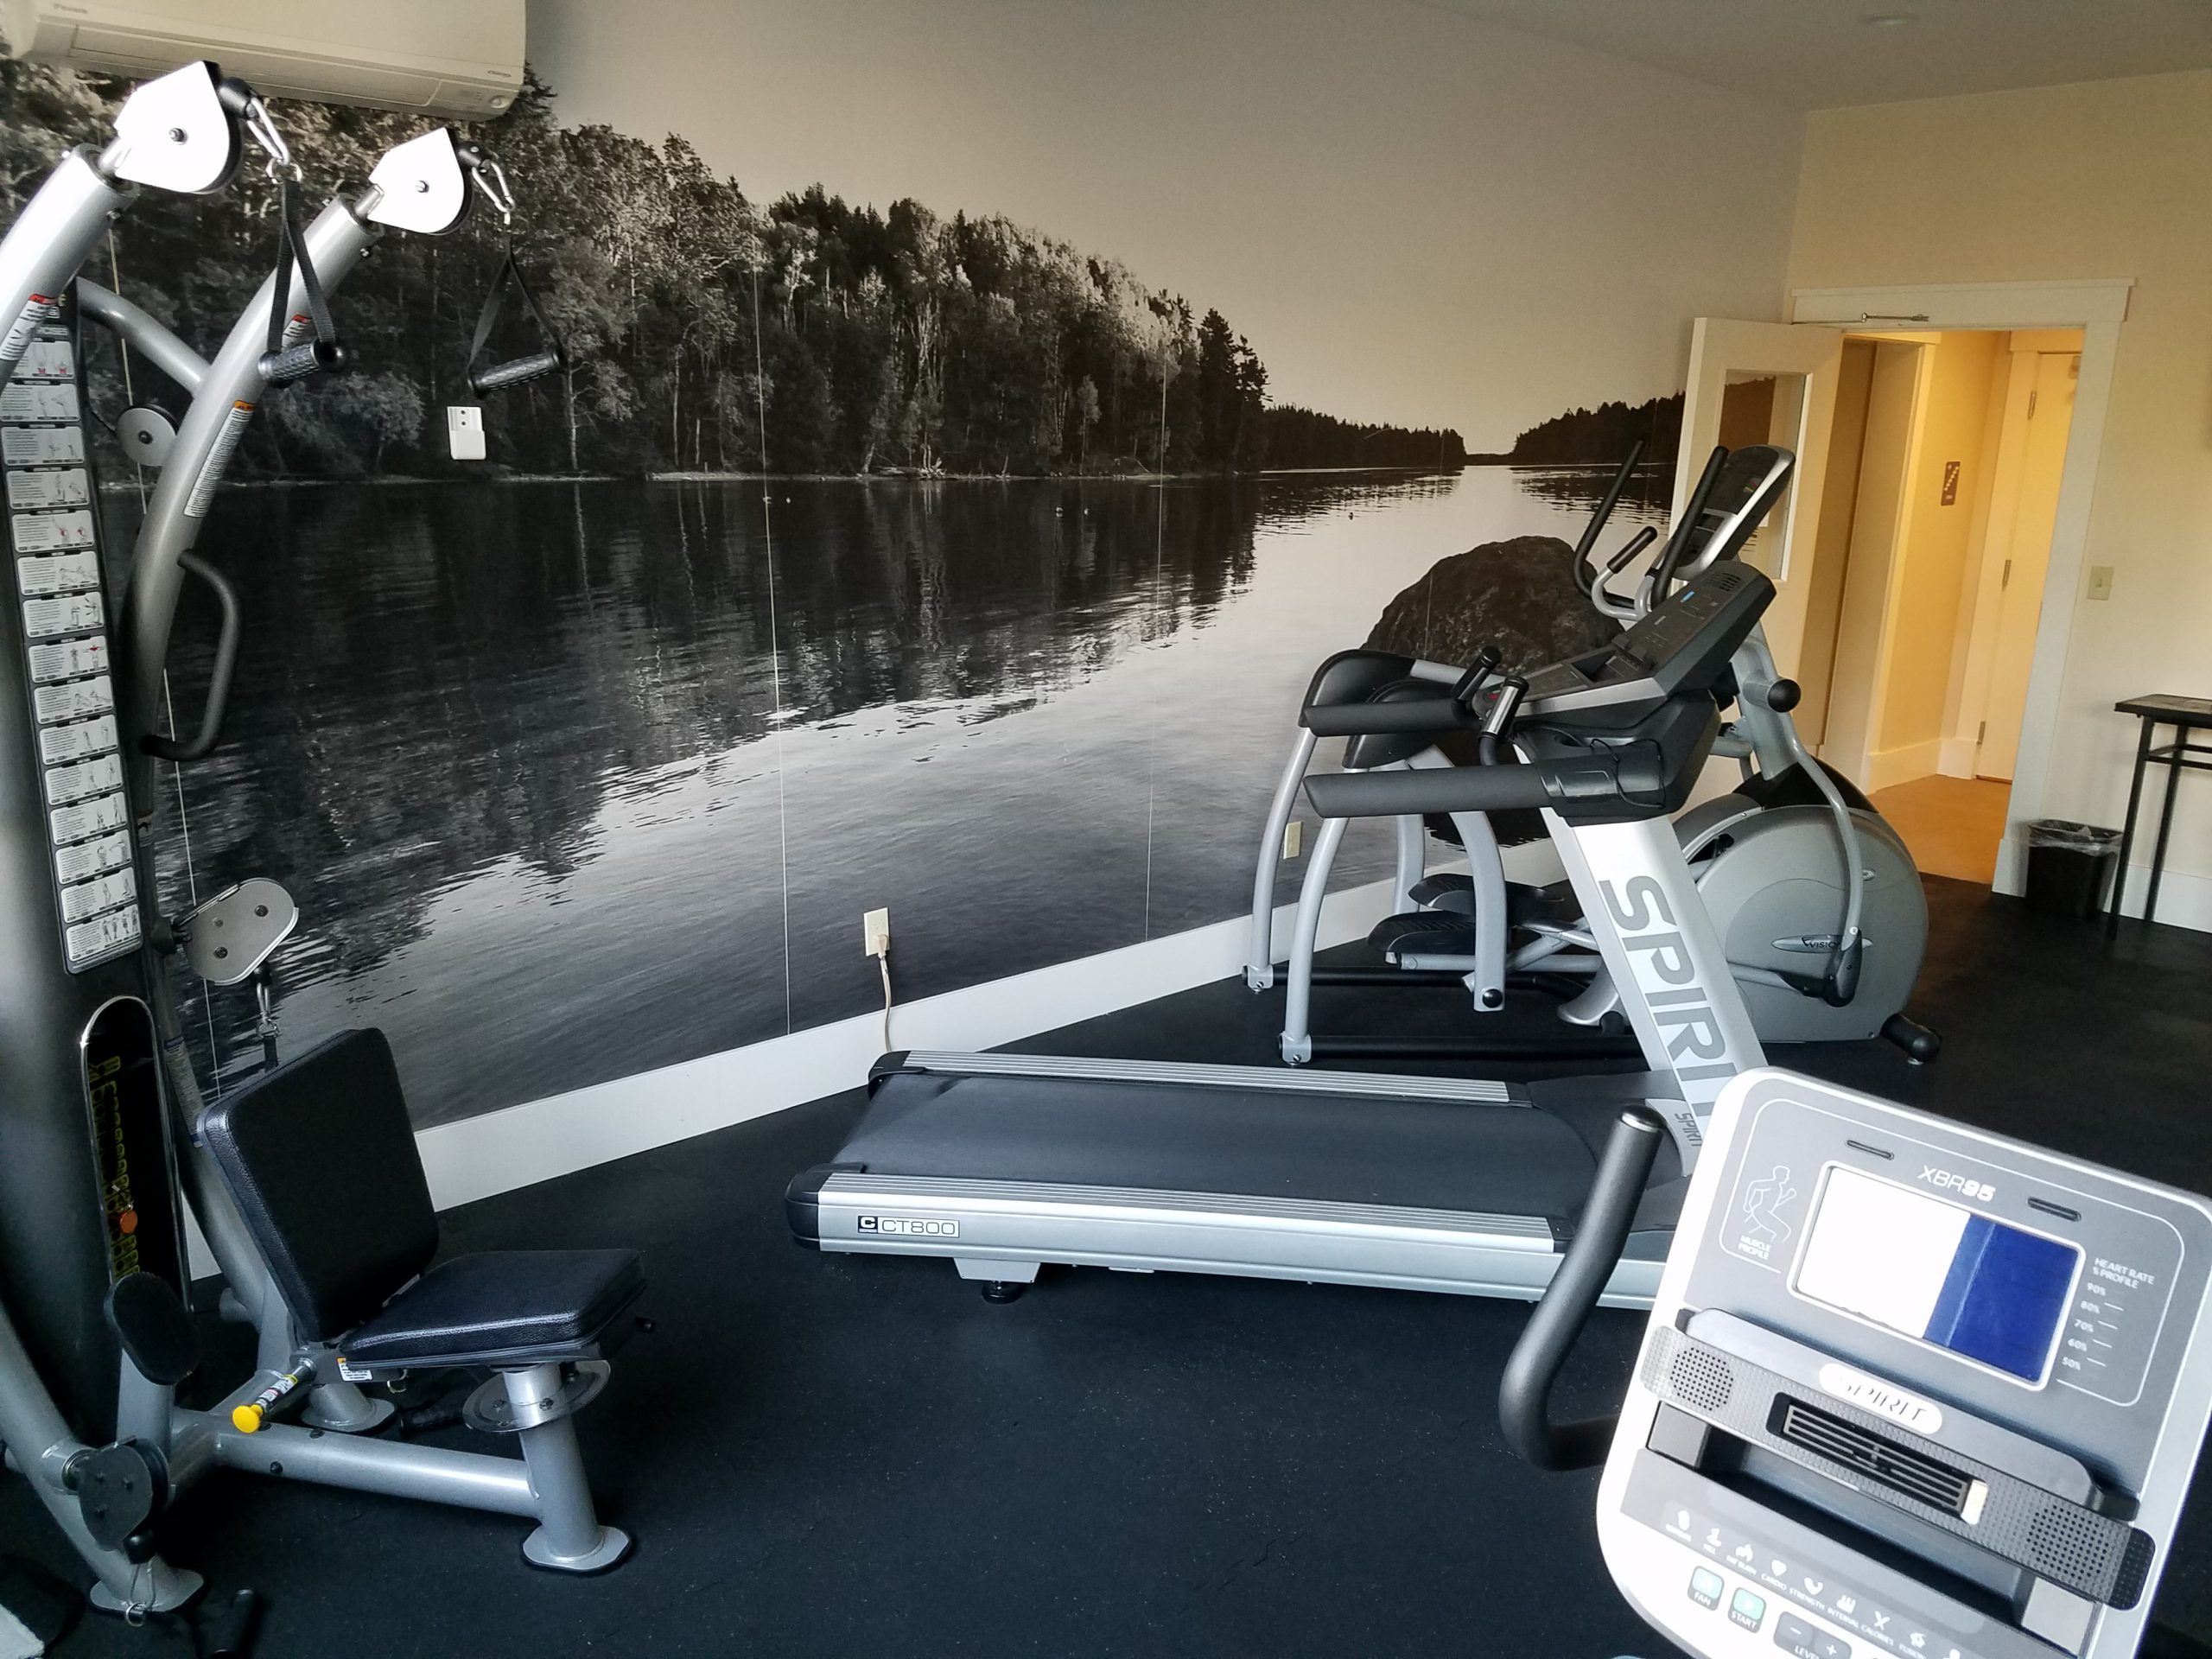 Workout room includes a wall mural and multiple fitness machines